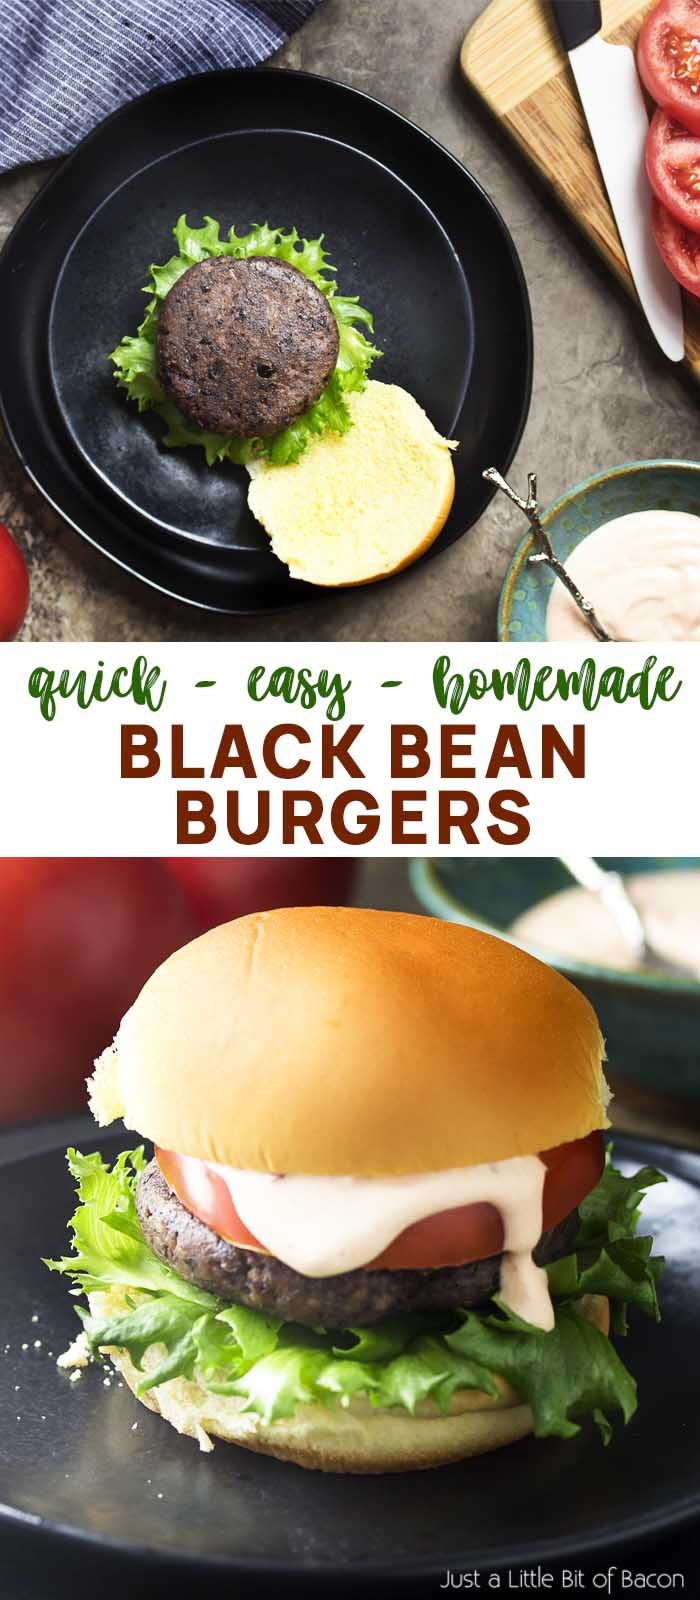 Two views of a burger on a bun with text overlay - Black Bean Burgers.